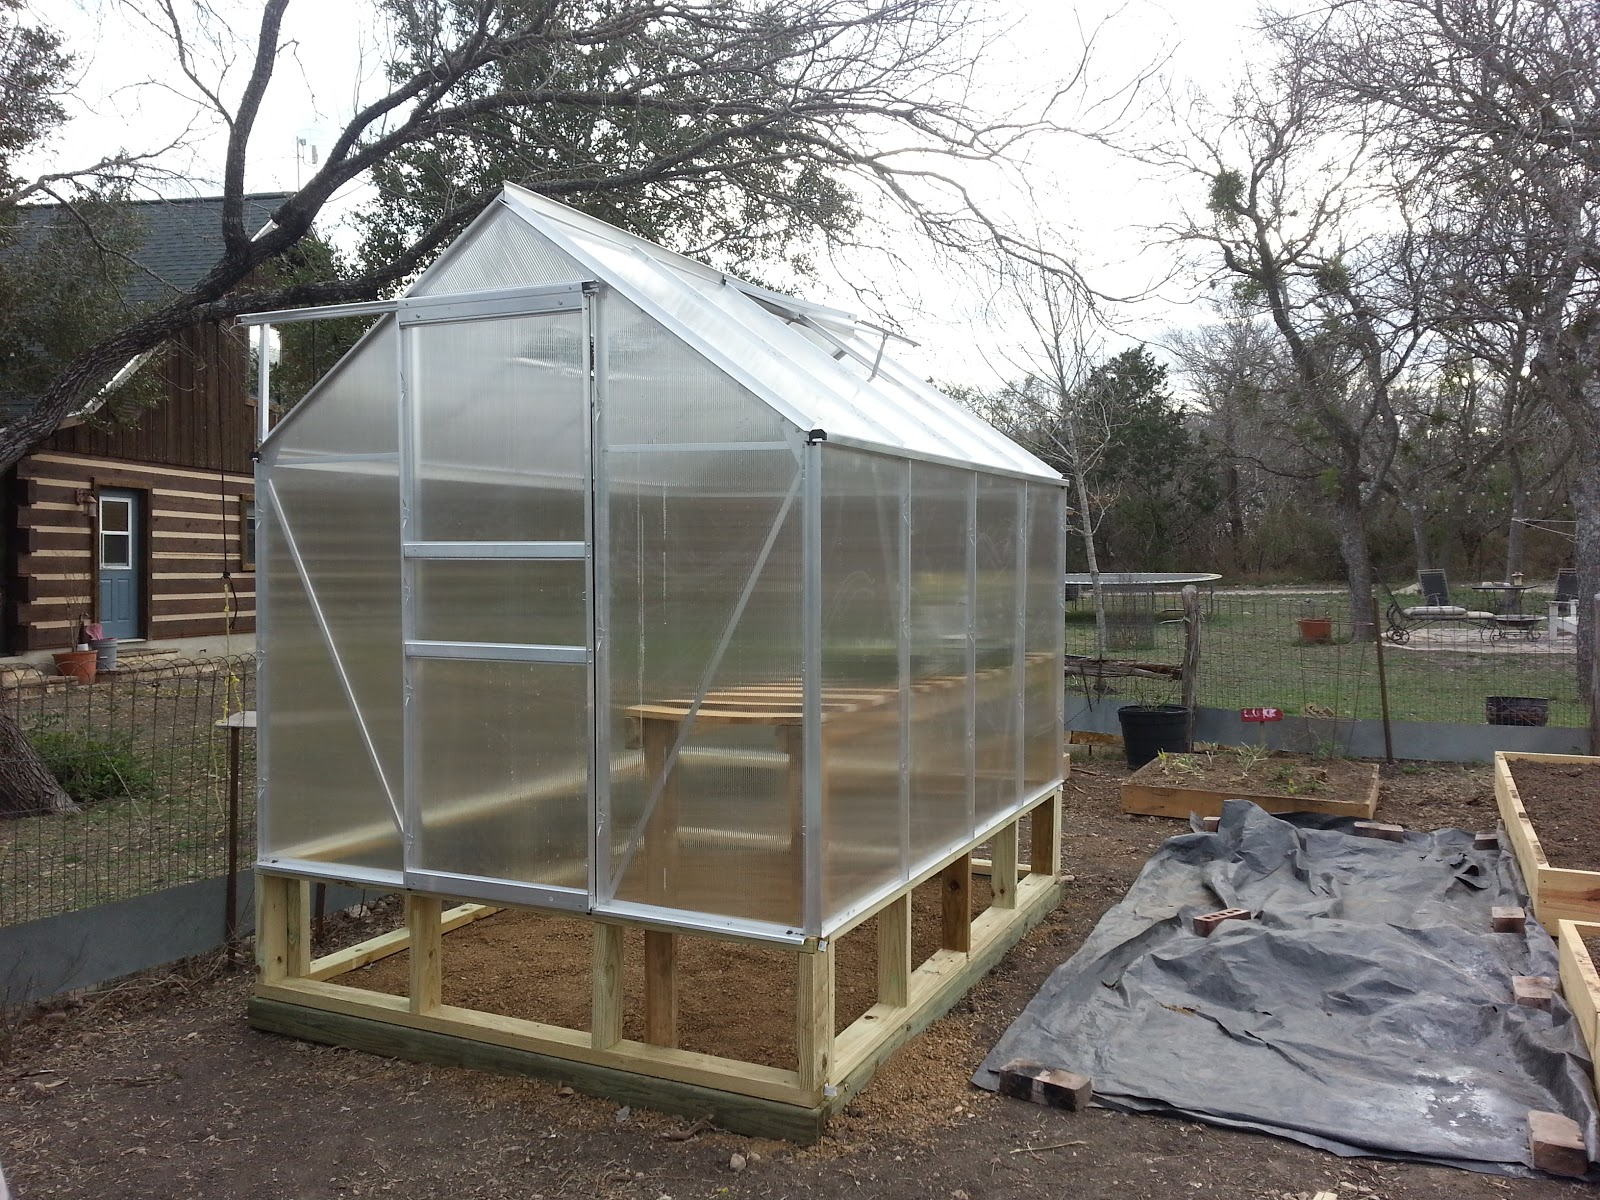 Harbor Freight 6x8 Greenhouse : Harbor freight greenhouse assembly daddykirbs farm